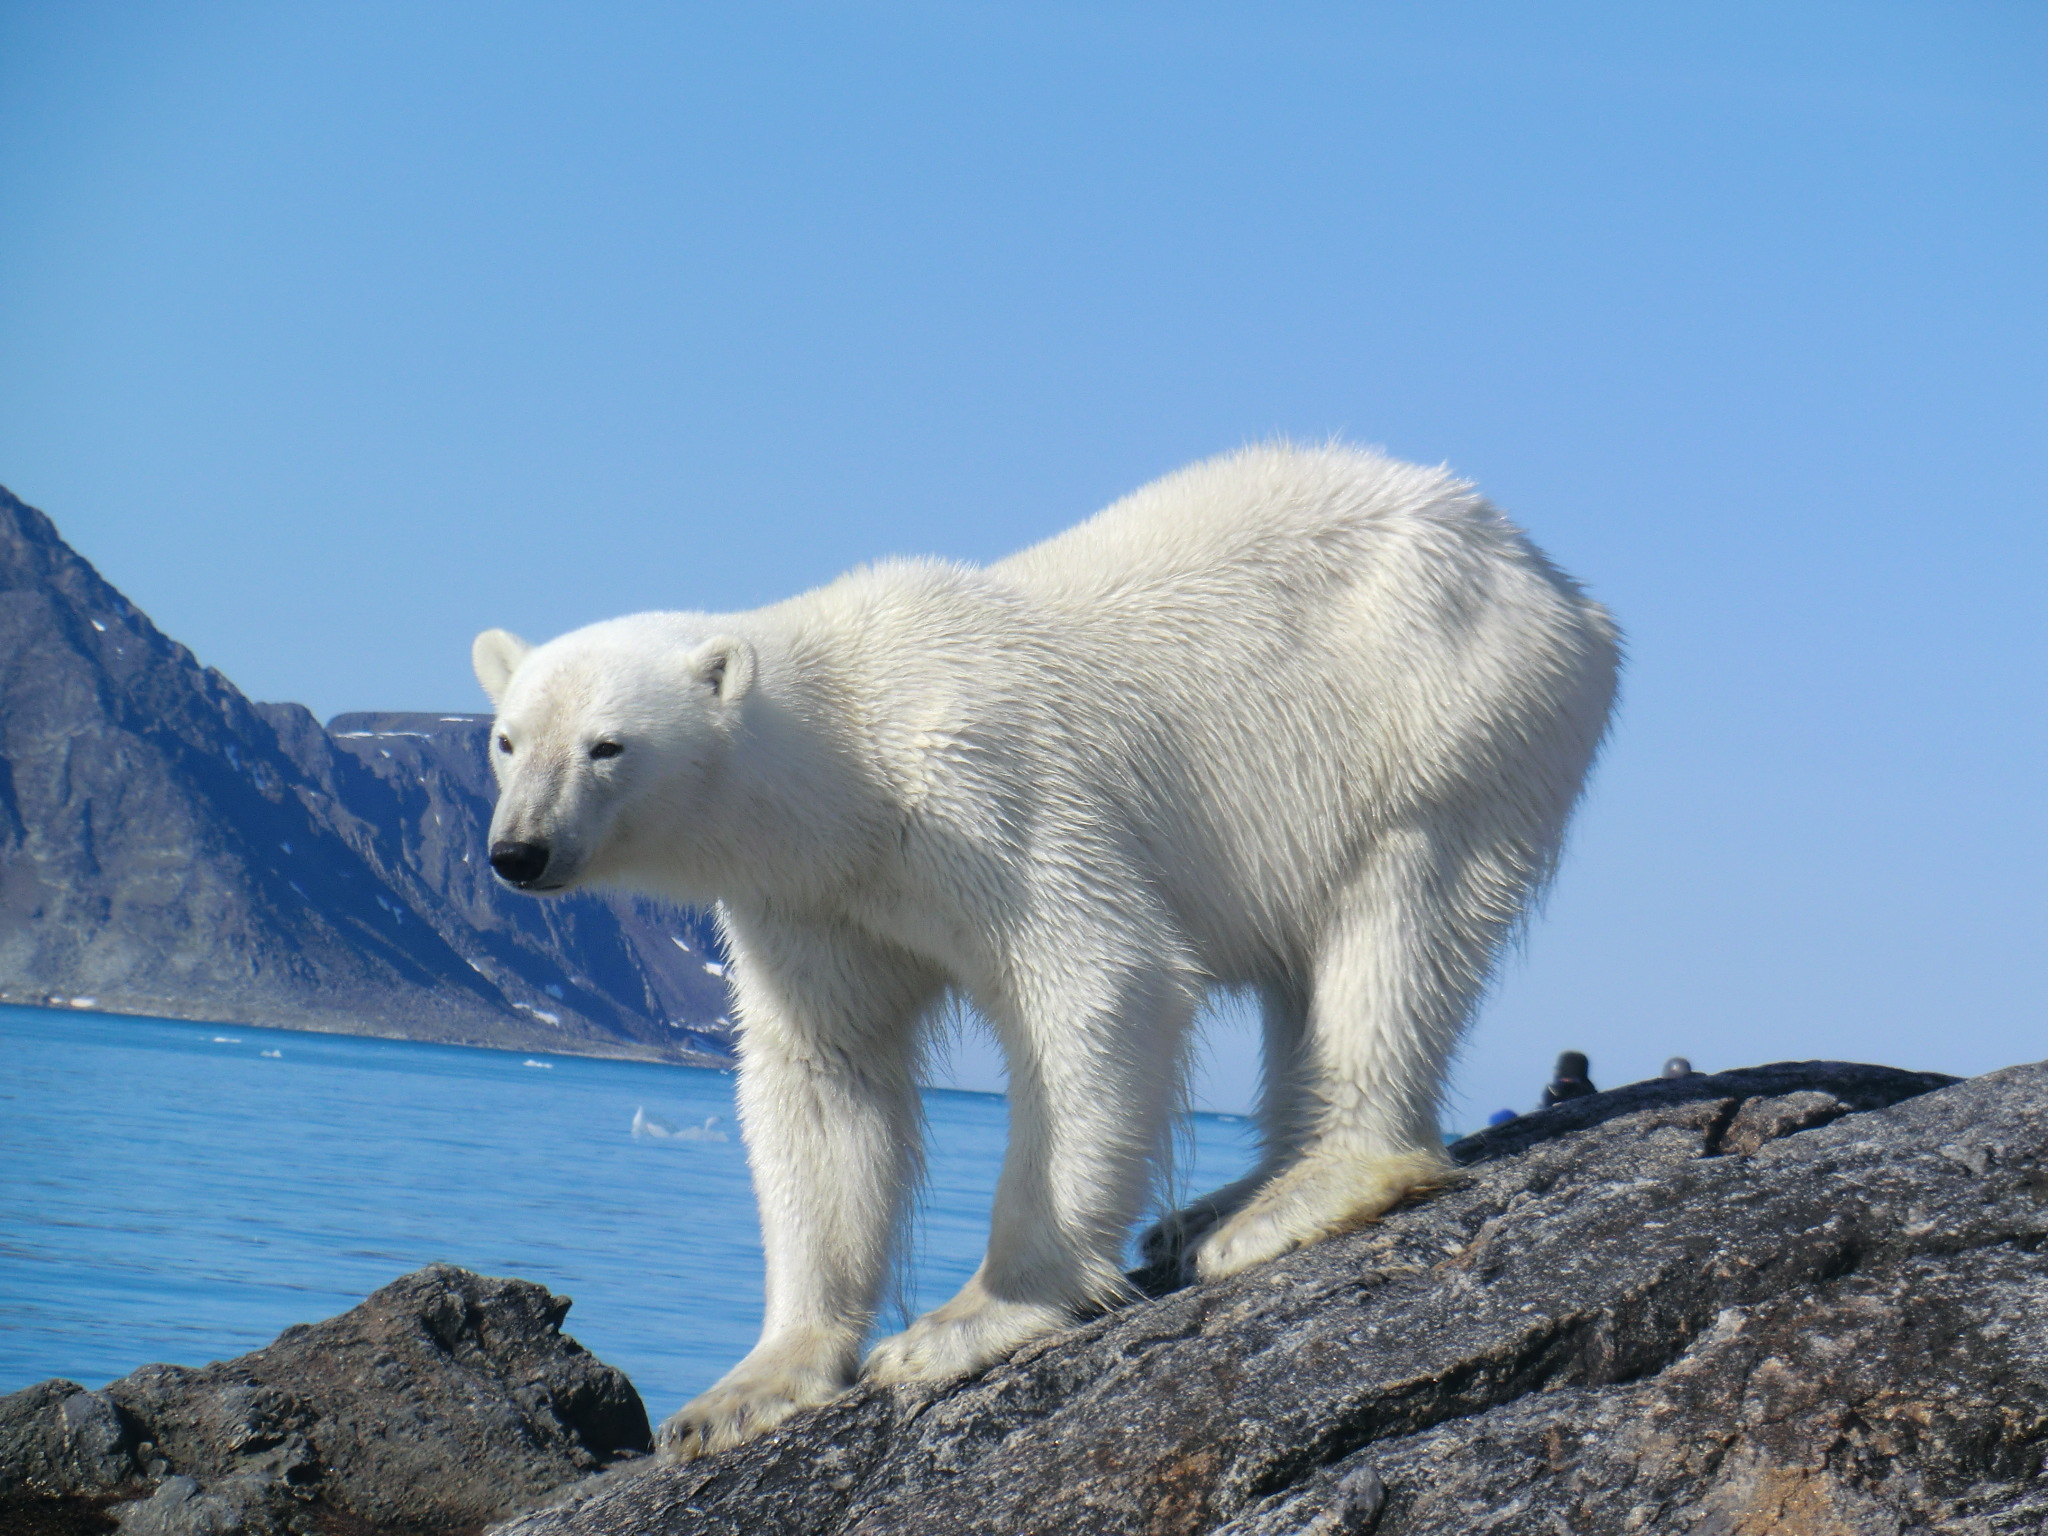 Adopt A Polar Bear When You Visit The Arctic With Aurora